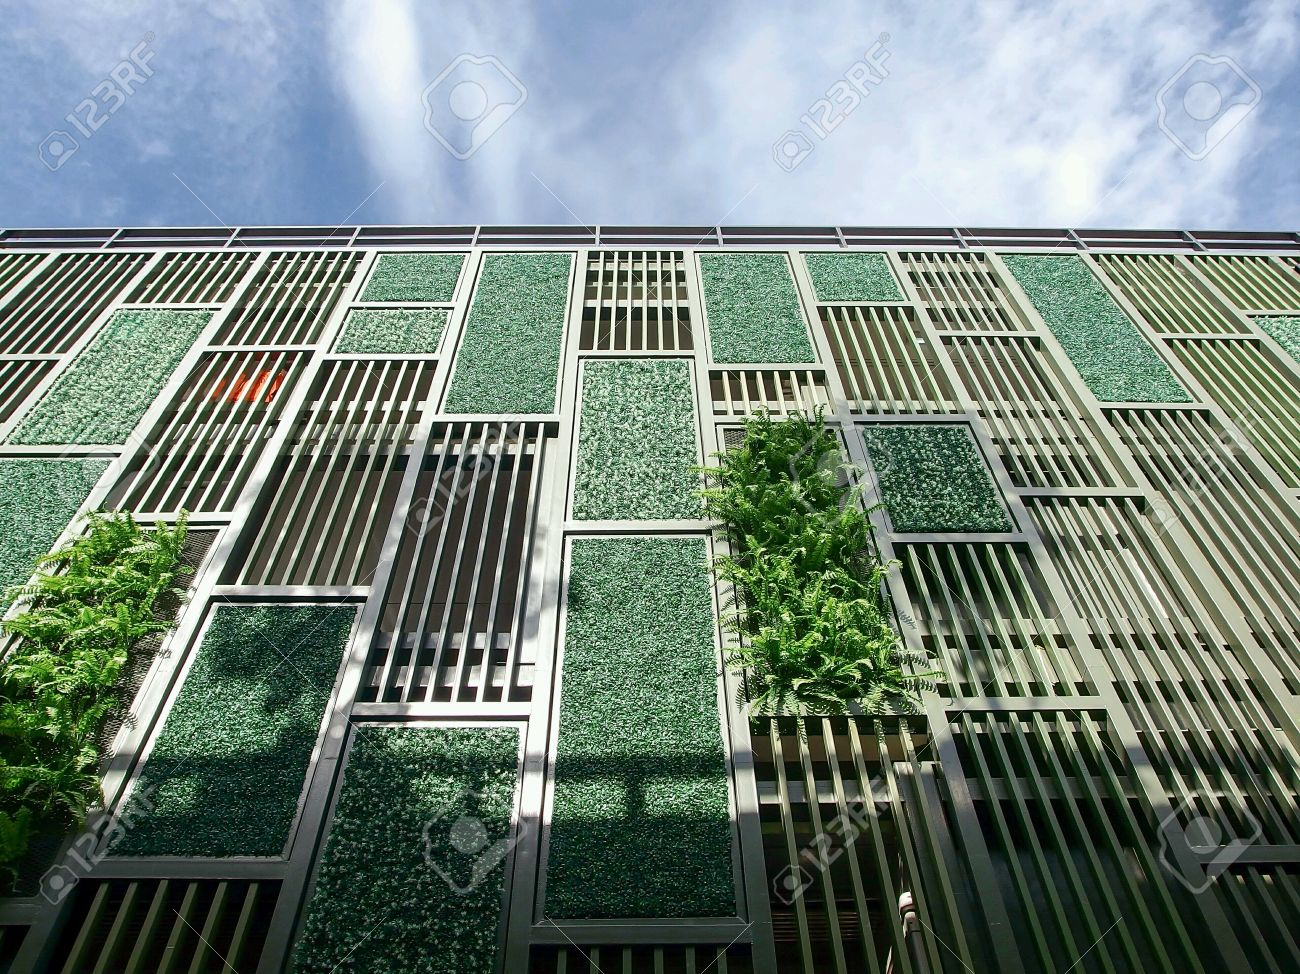 Facade with green wall and blind in geometric pattern Stock Photo - 41470002